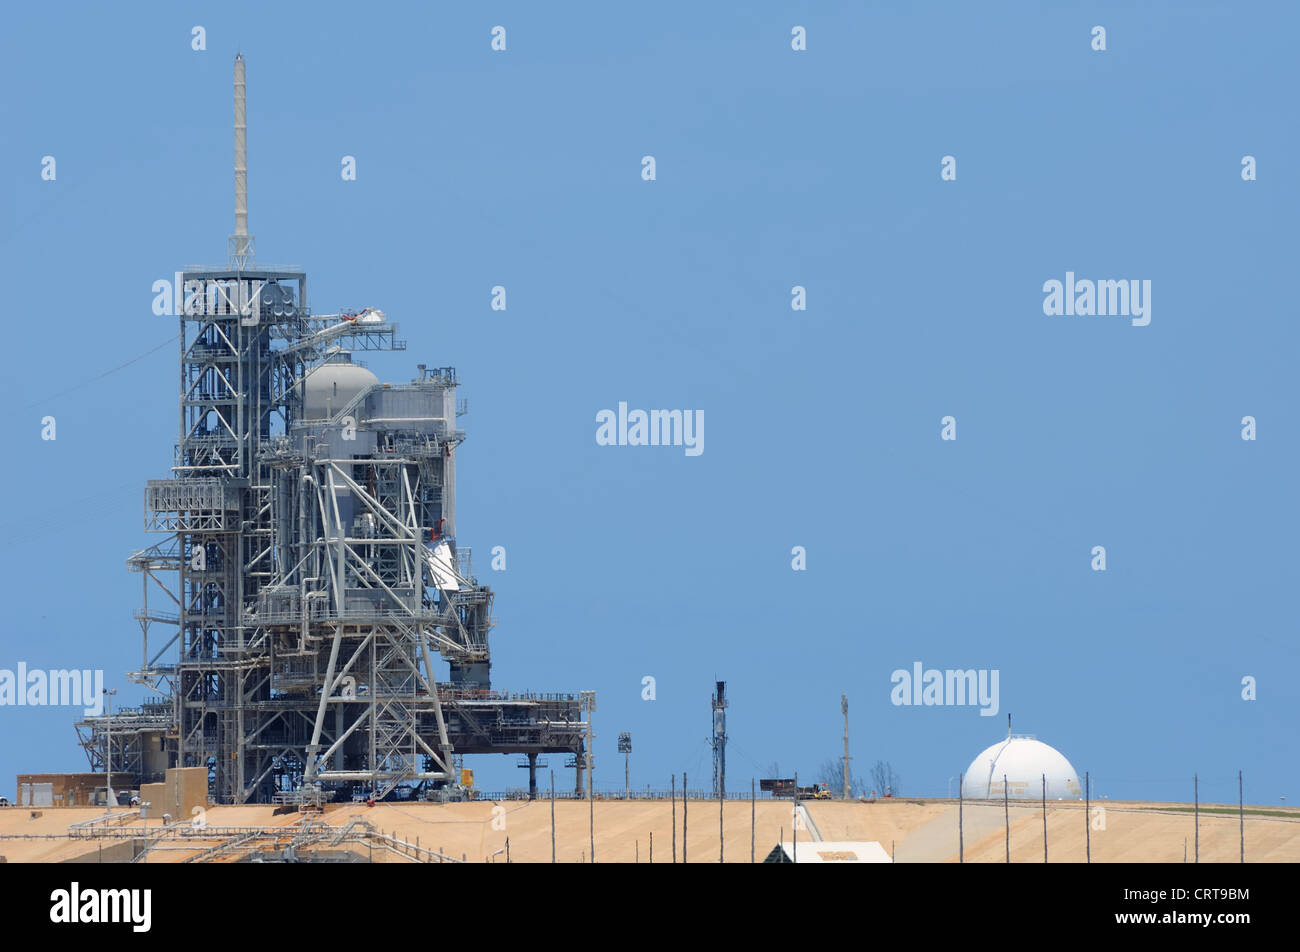 Launch pad at the Kennedy space centre in Florida. - Stock Image